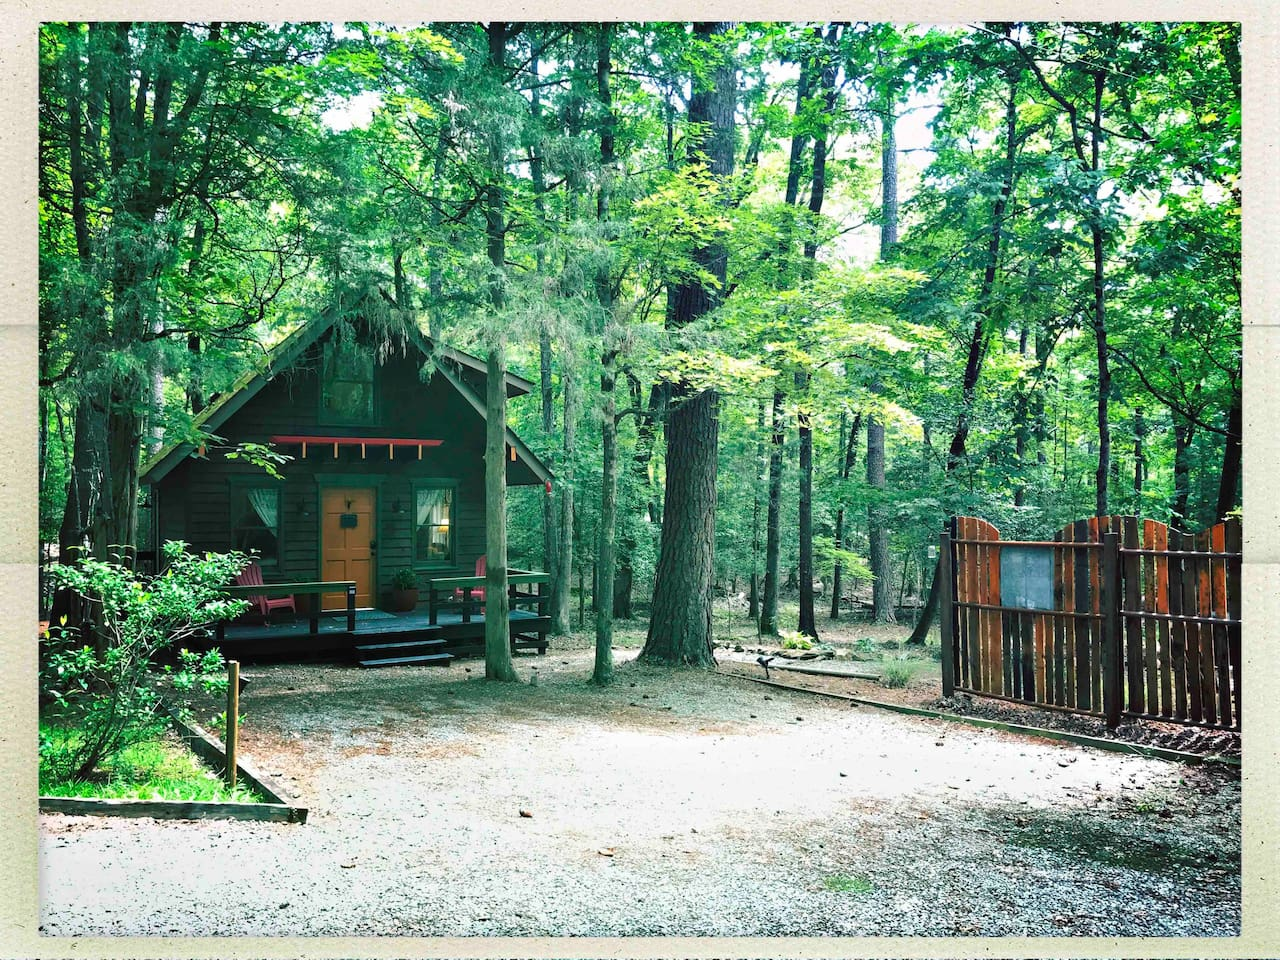 View of the cabin during the summer - our forest's lush canopy provides lots of shade and cool breezes